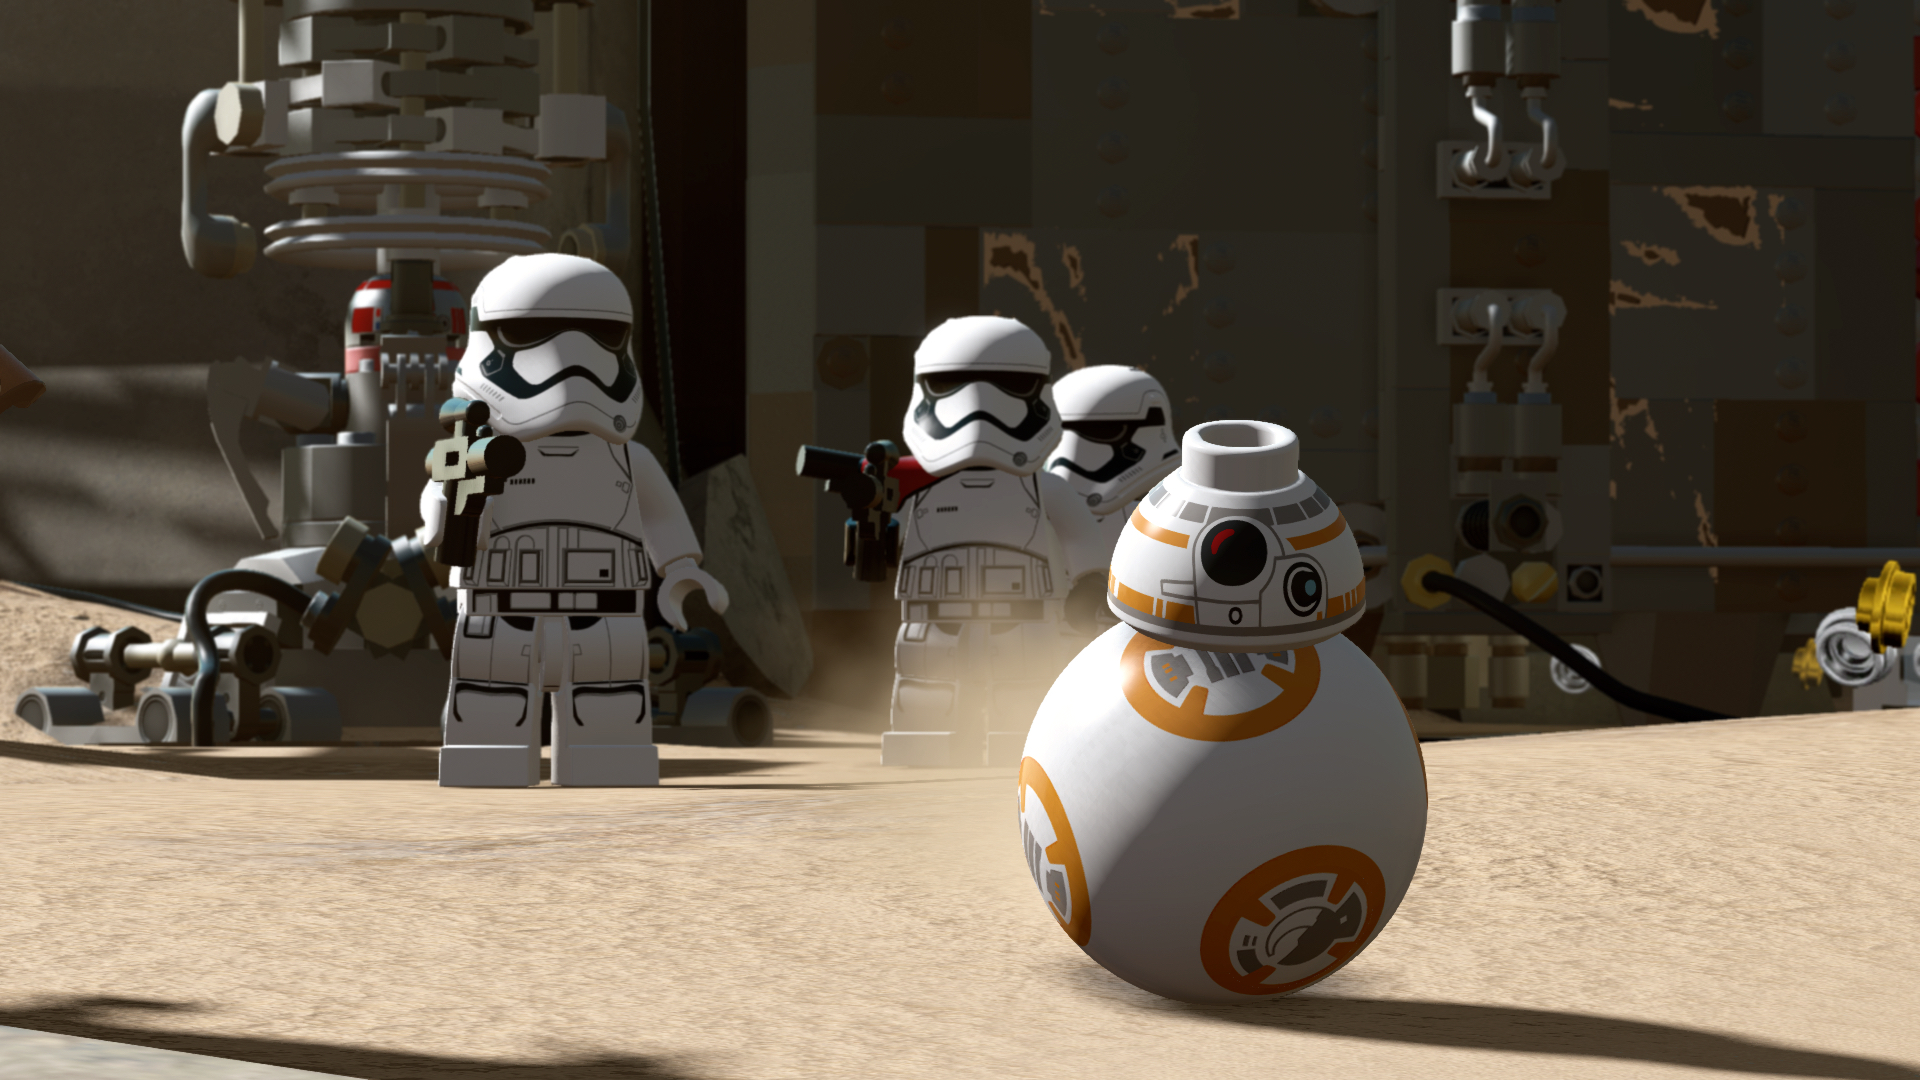 LEGO Star Wars Le Réveil de la Force BB-8